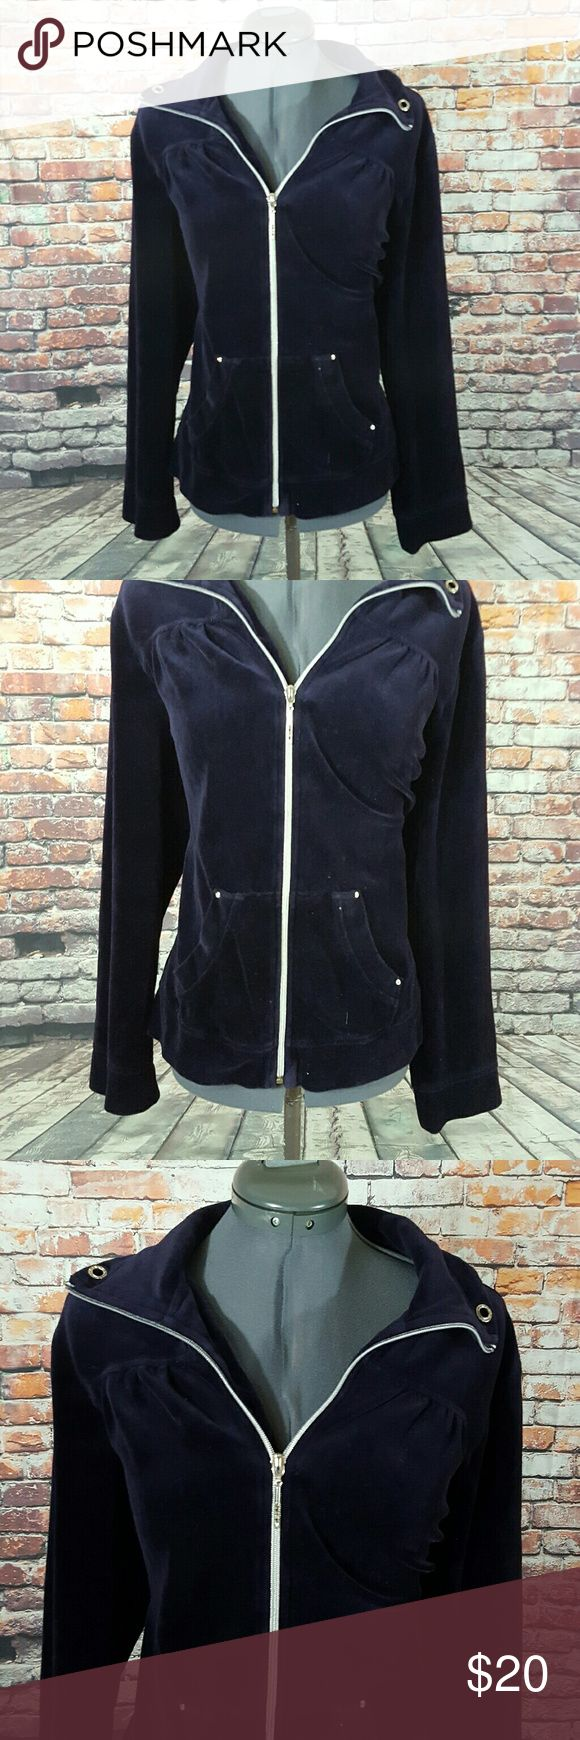 """Chicos 2 Velour Jacket Women's Zenergy by Chico's Size 2 Dark Purple Long Sleeve Zip Up Velour Jacket  Gently used with no flaws, see photos  Measurements: 21.5"""" armpit to armpit 20.5"""" waist while laying flat  25"""" in length  RT56 Chico's Jackets & Coats"""